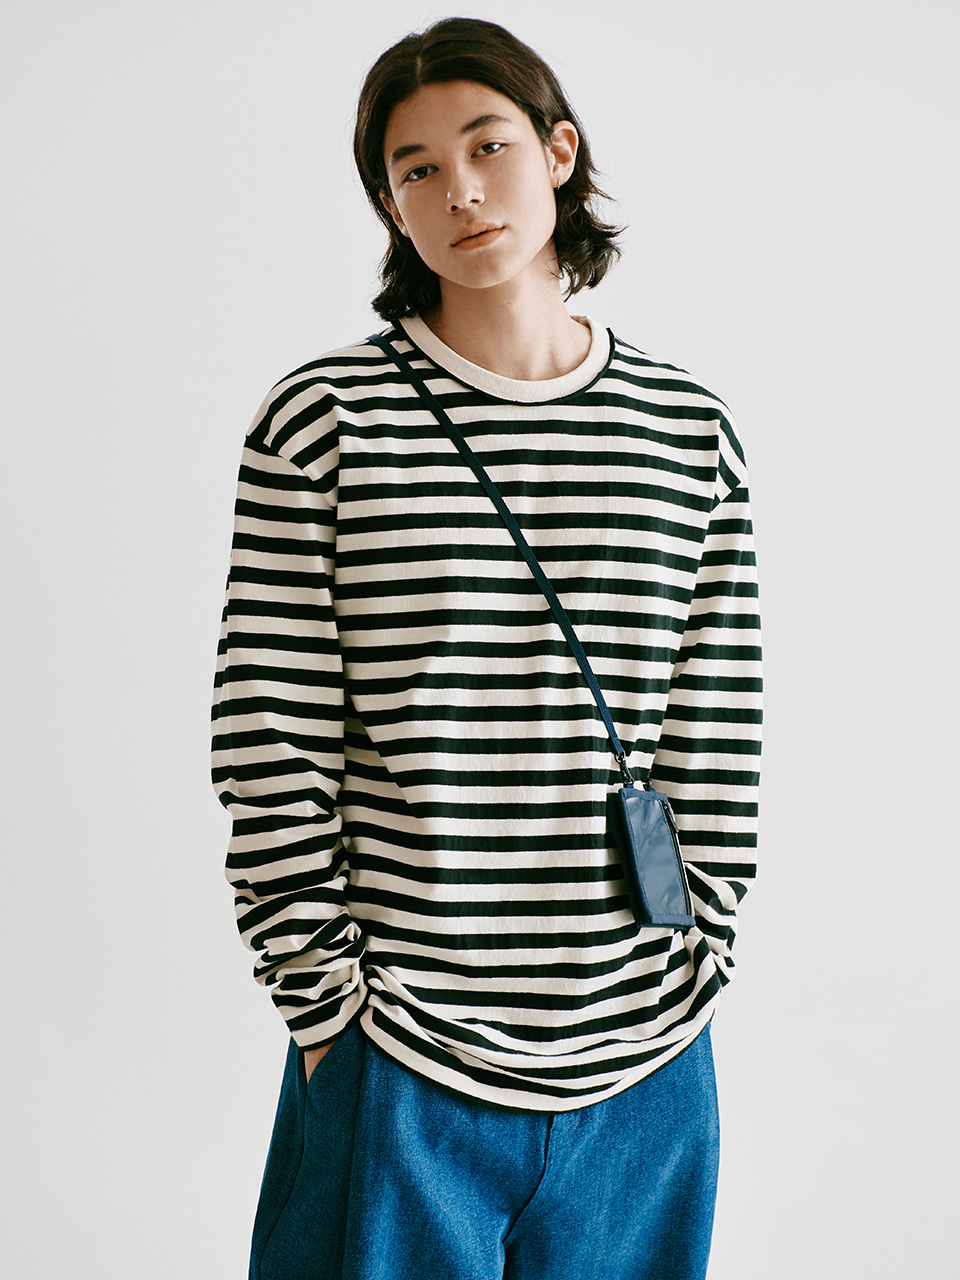 [FW20 Sounds Life] Comfy Striped T-shirt(Black) STEREO-SHOP